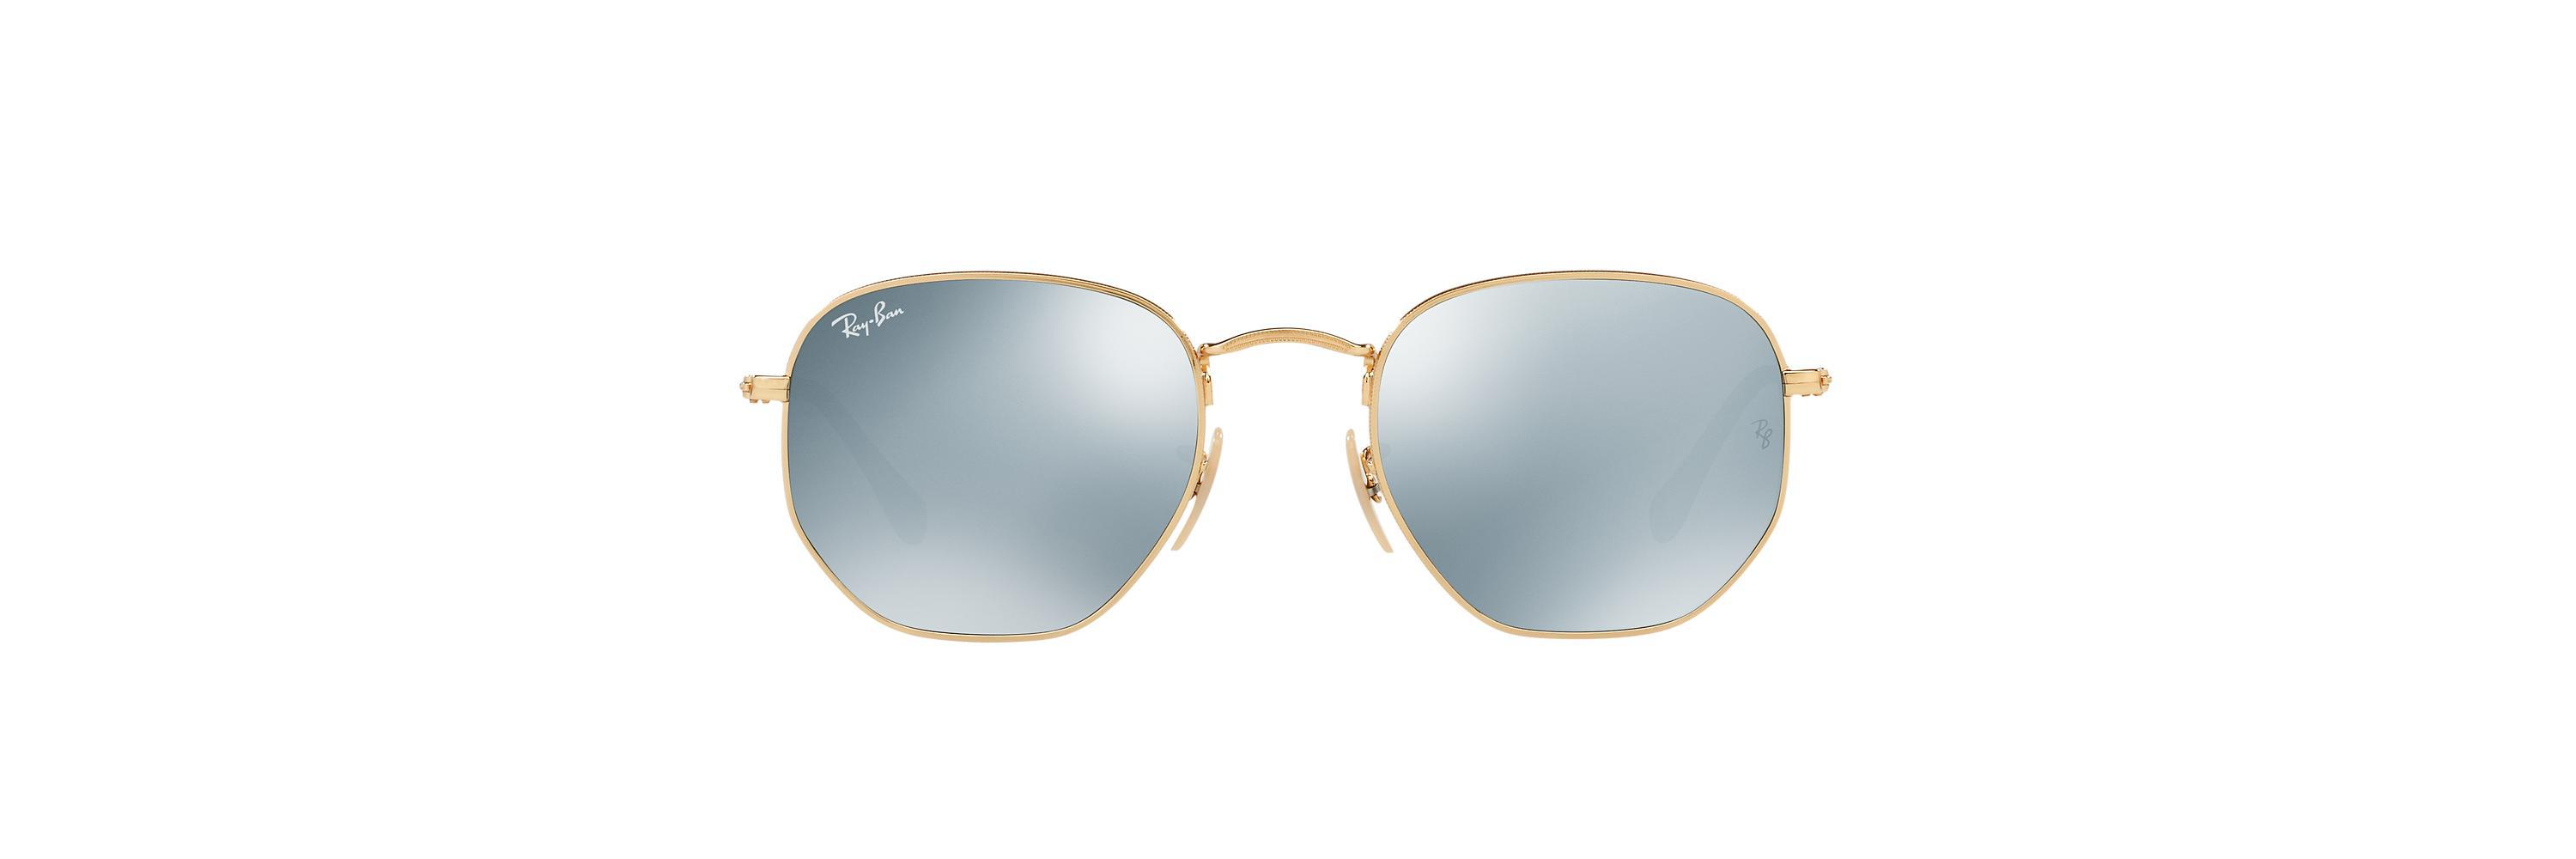 7229dfc8e5f Ray-Ban. Men s Metallic Rb3548n 51 Hexagonal Flat Lens Mirror Collection.   178 From Sunglass Hut